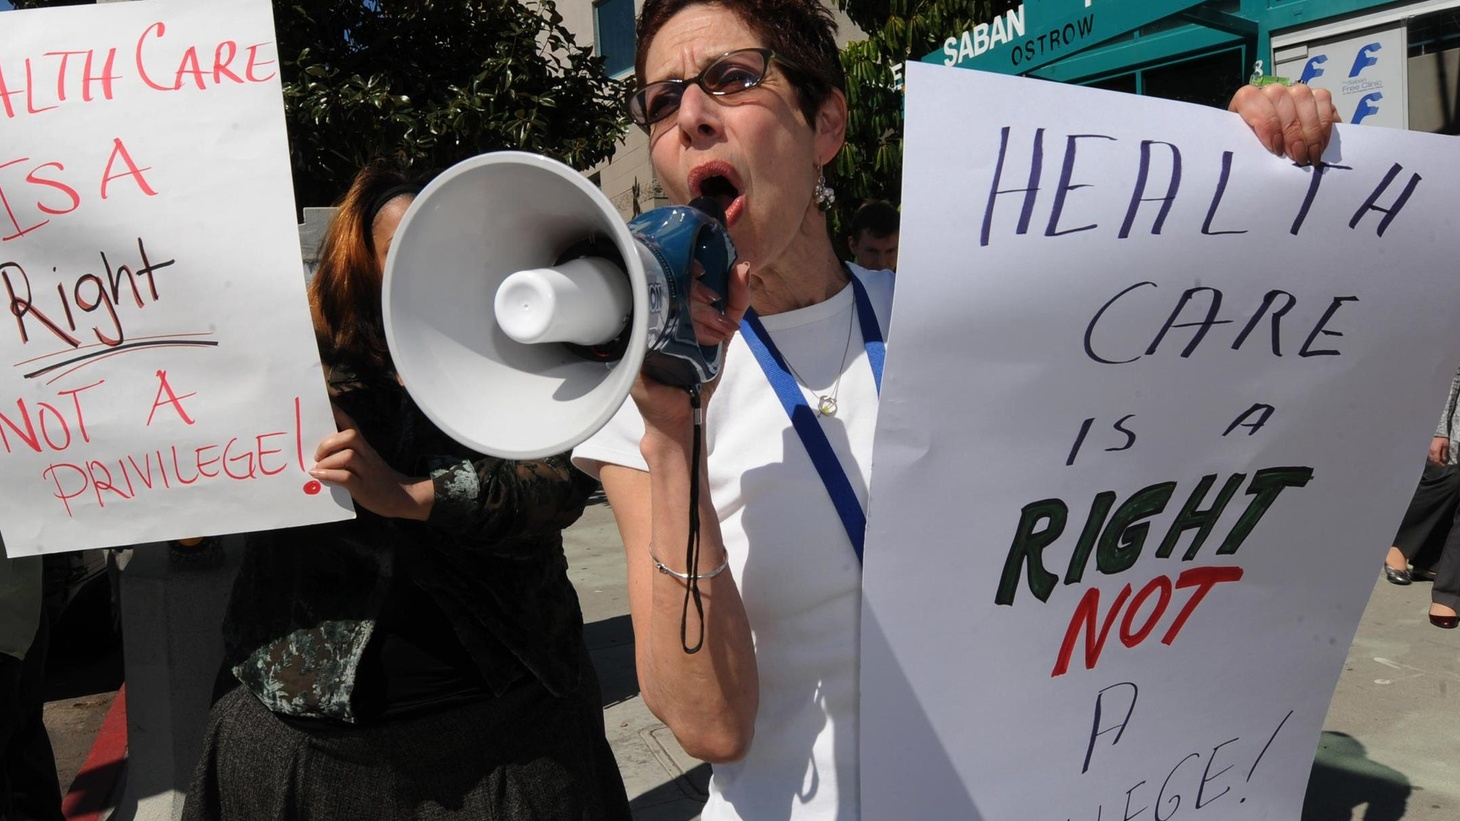 Rising unemployment means a quarter of Californians under 65 don't have health insurance. State cutbacks could make matters worse. Also, Governor Schwarzenegger says he wants to cut the deficit. Why has he vetoed spending reductions? On our rebroadcast of To the Point, the Obama Administration is making nice with Israel today -- at least in public -- but tensions are still high over housing plans in East Jerusalem and American credibility in the Middle East.